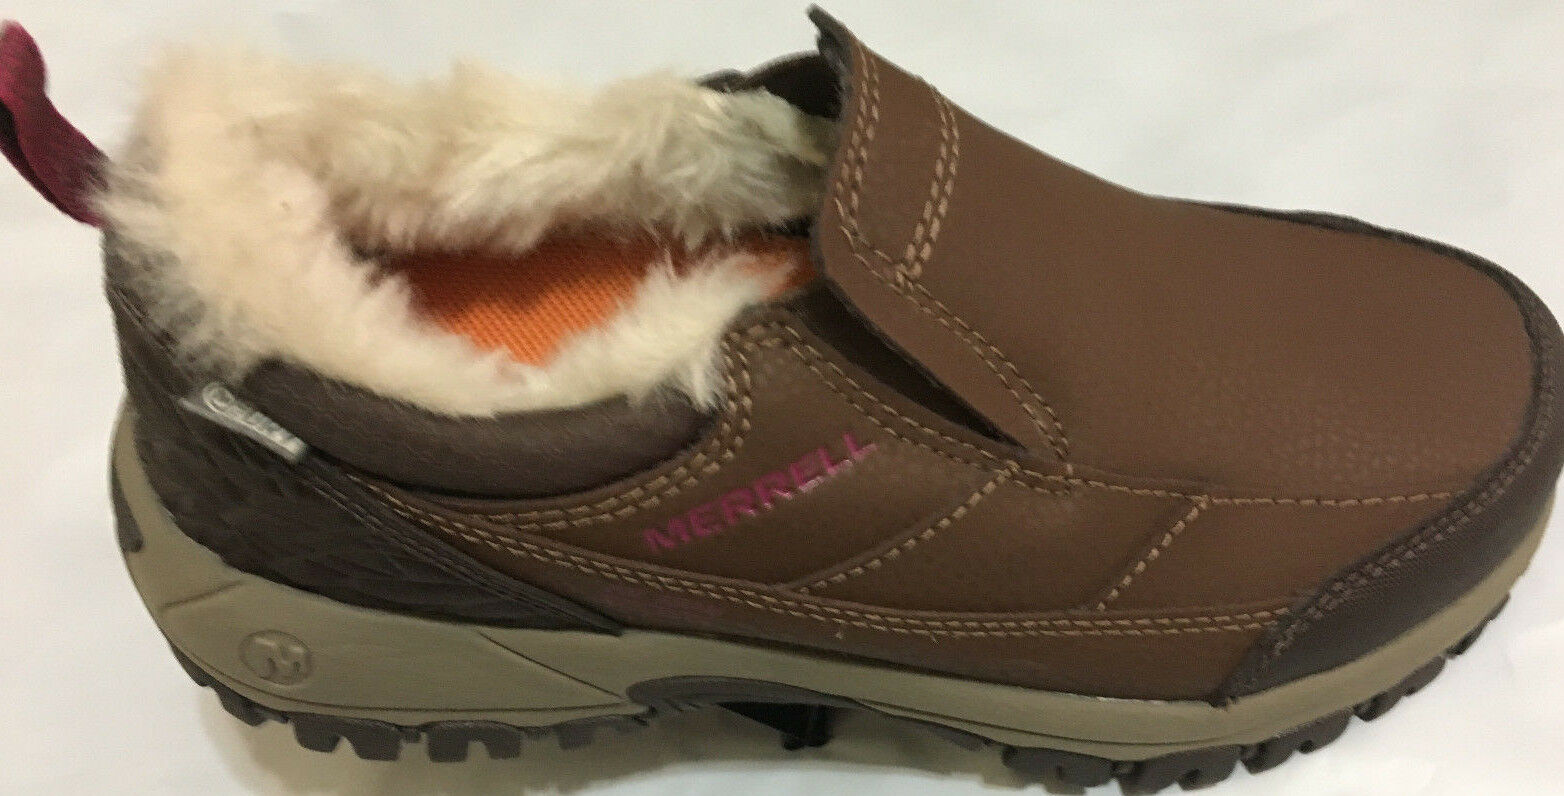 NIB MERRELL J317924C ENDERSY THERMO MOC WOMEN EARTH WTPF INSULATED SLIP ON Schuhe